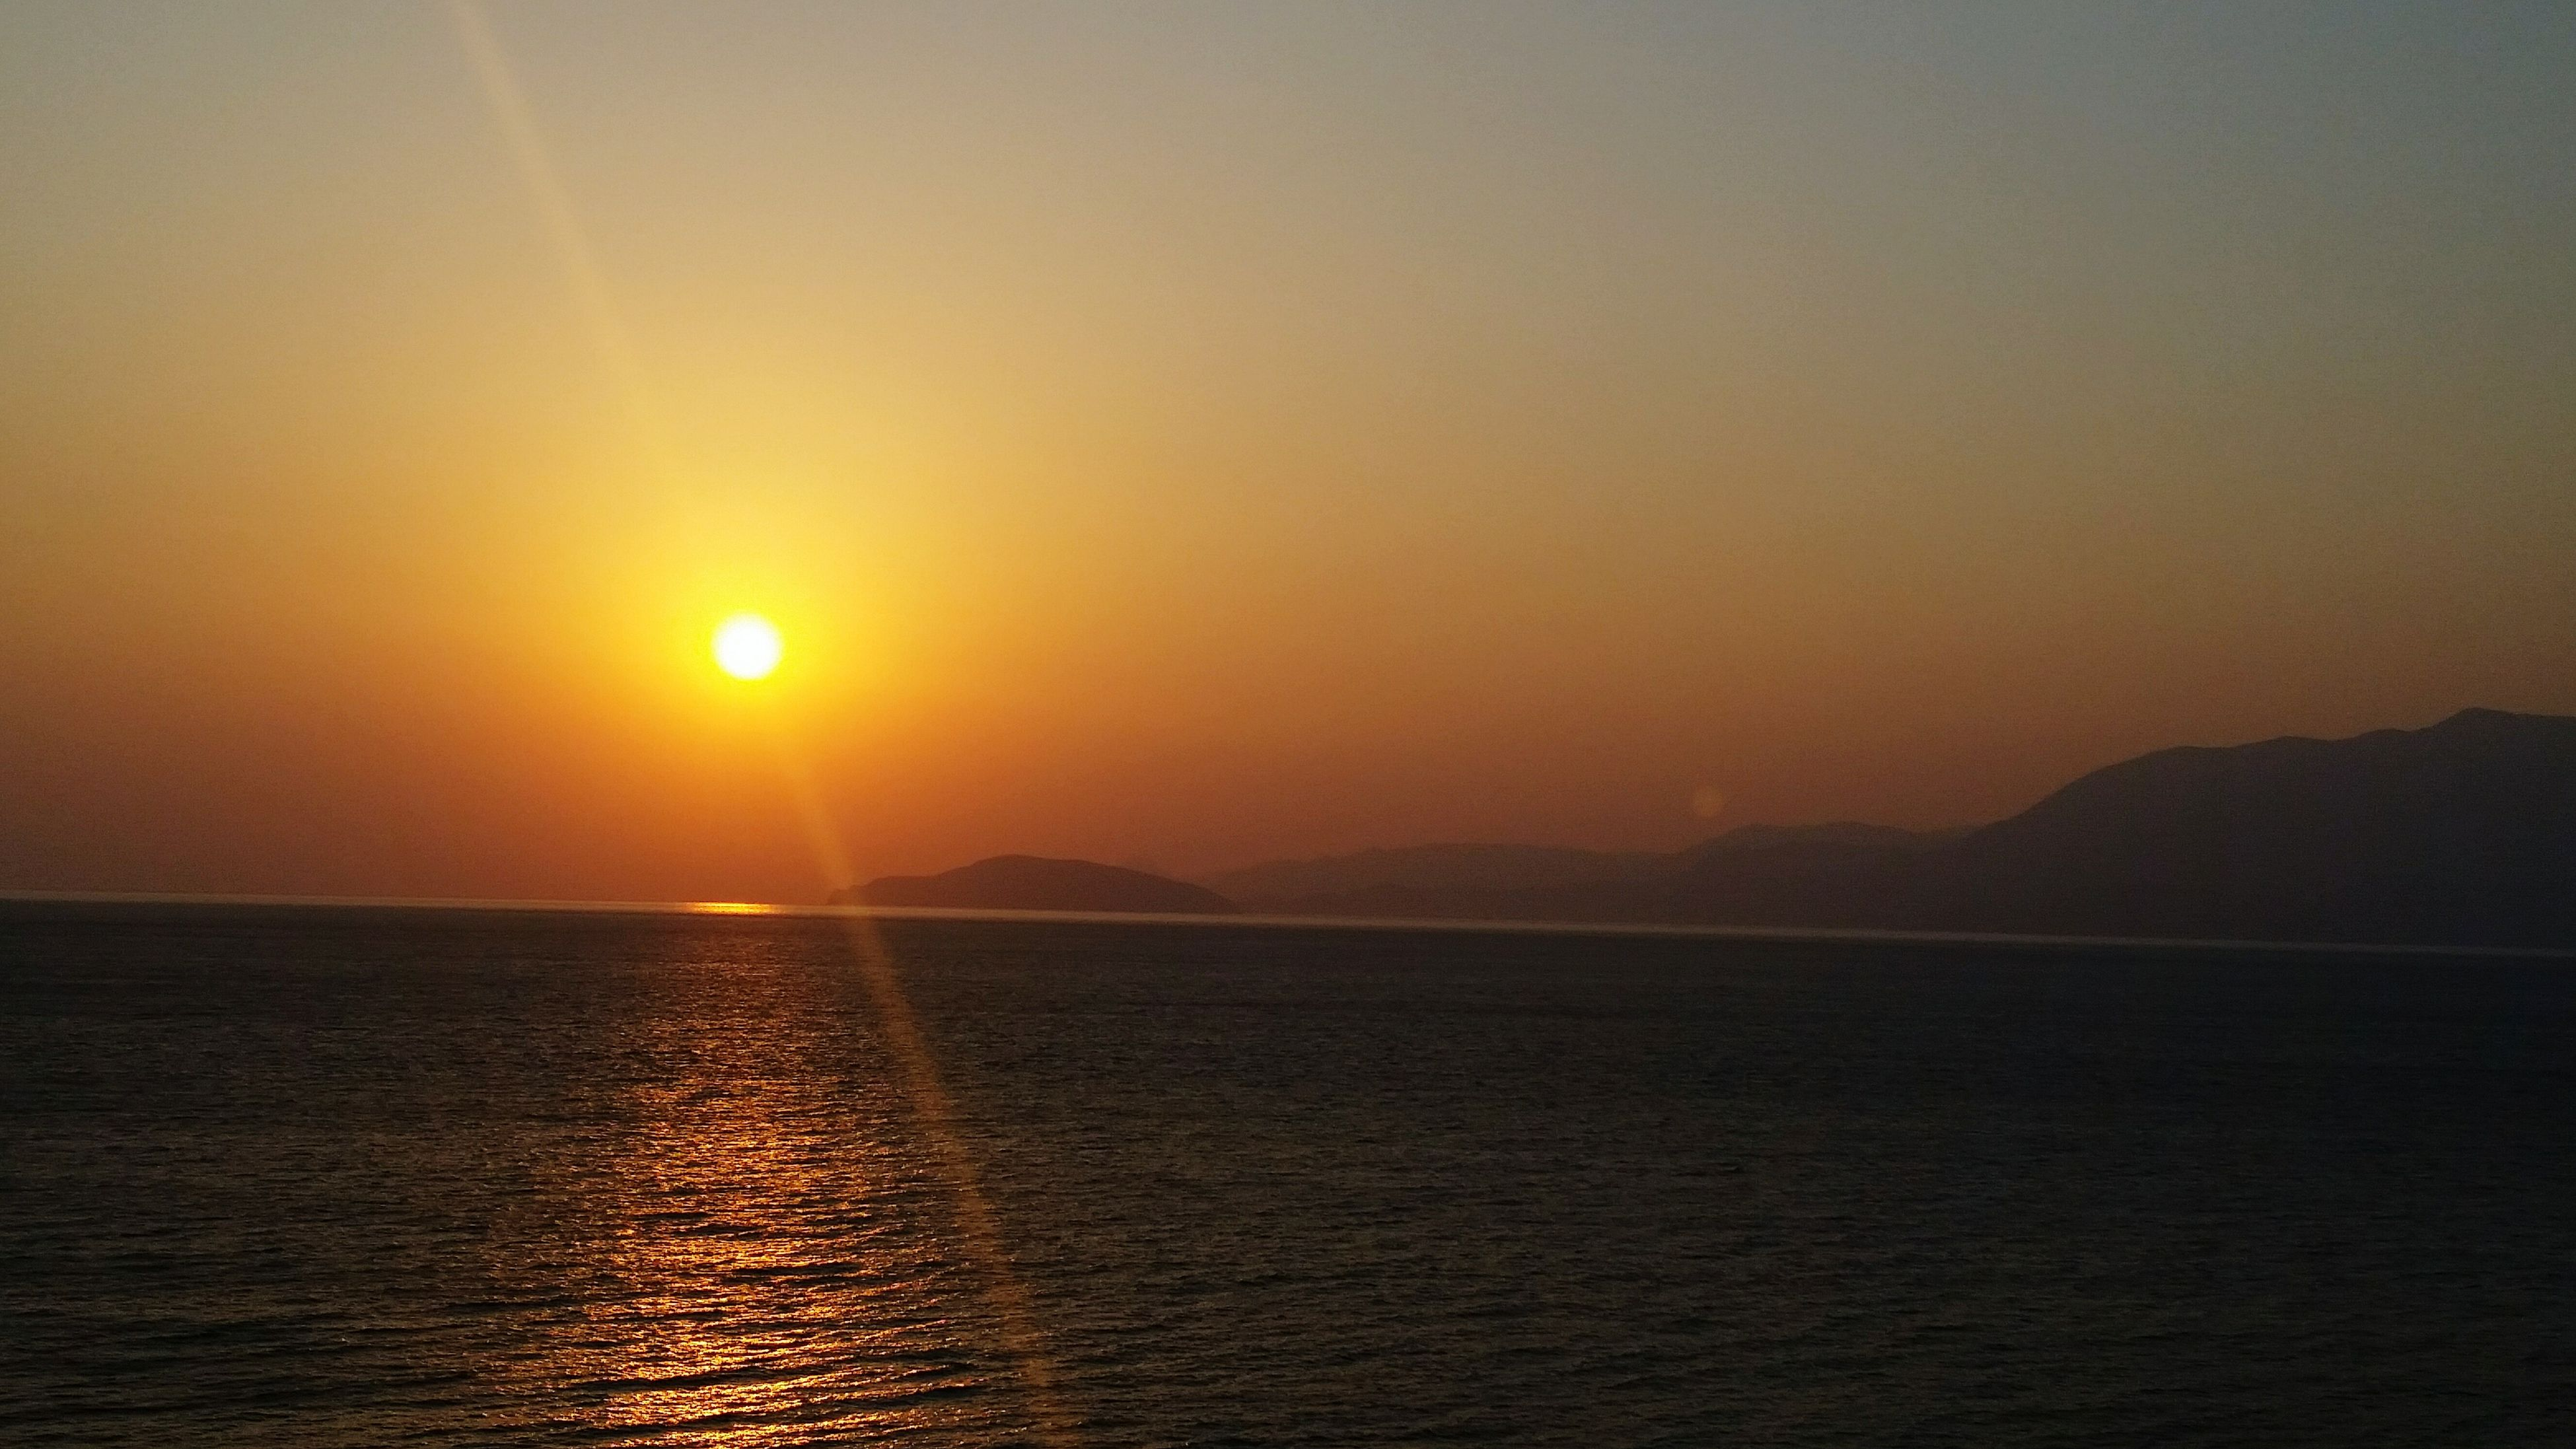 sunset, sun, water, sea, scenics, tranquil scene, tranquility, beauty in nature, waterfront, horizon over water, idyllic, nature, reflection, orange color, sunlight, sky, rippled, mountain, clear sky, silhouette